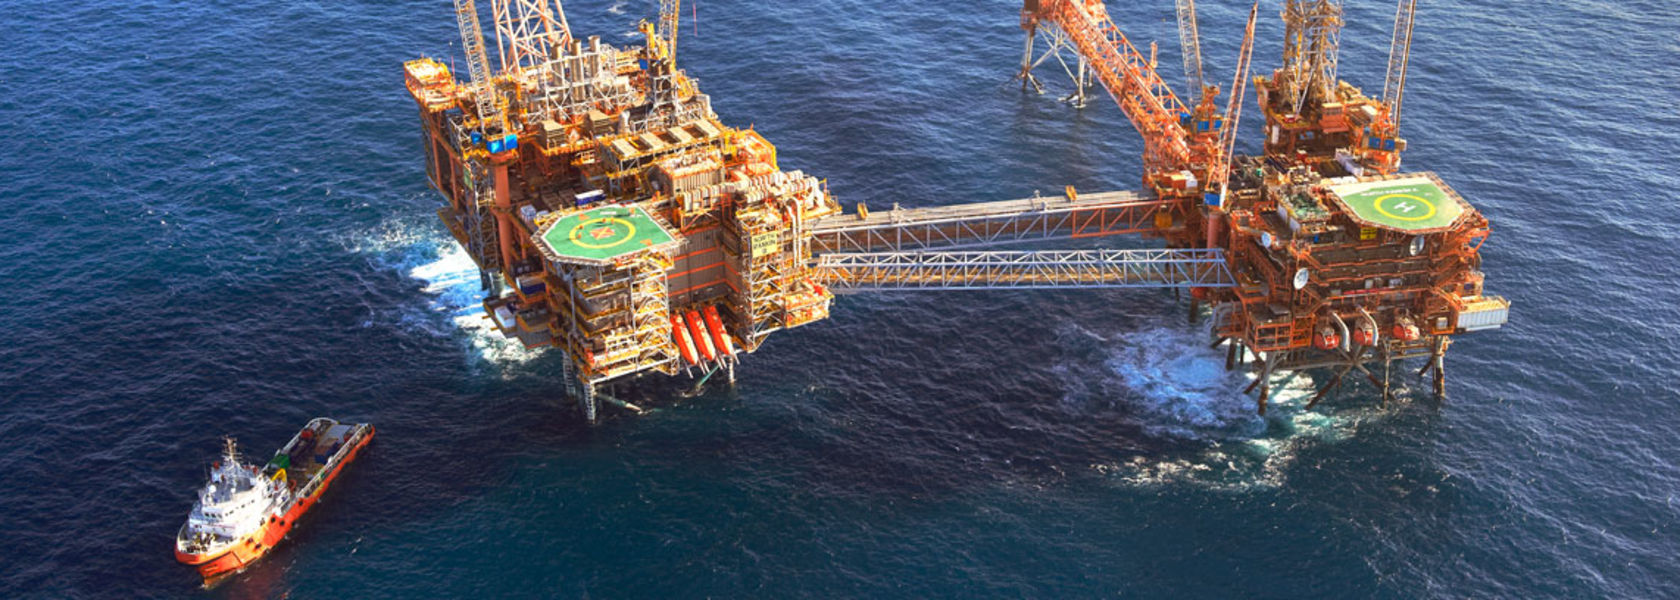 Australian oil and gas production increasing after drop off